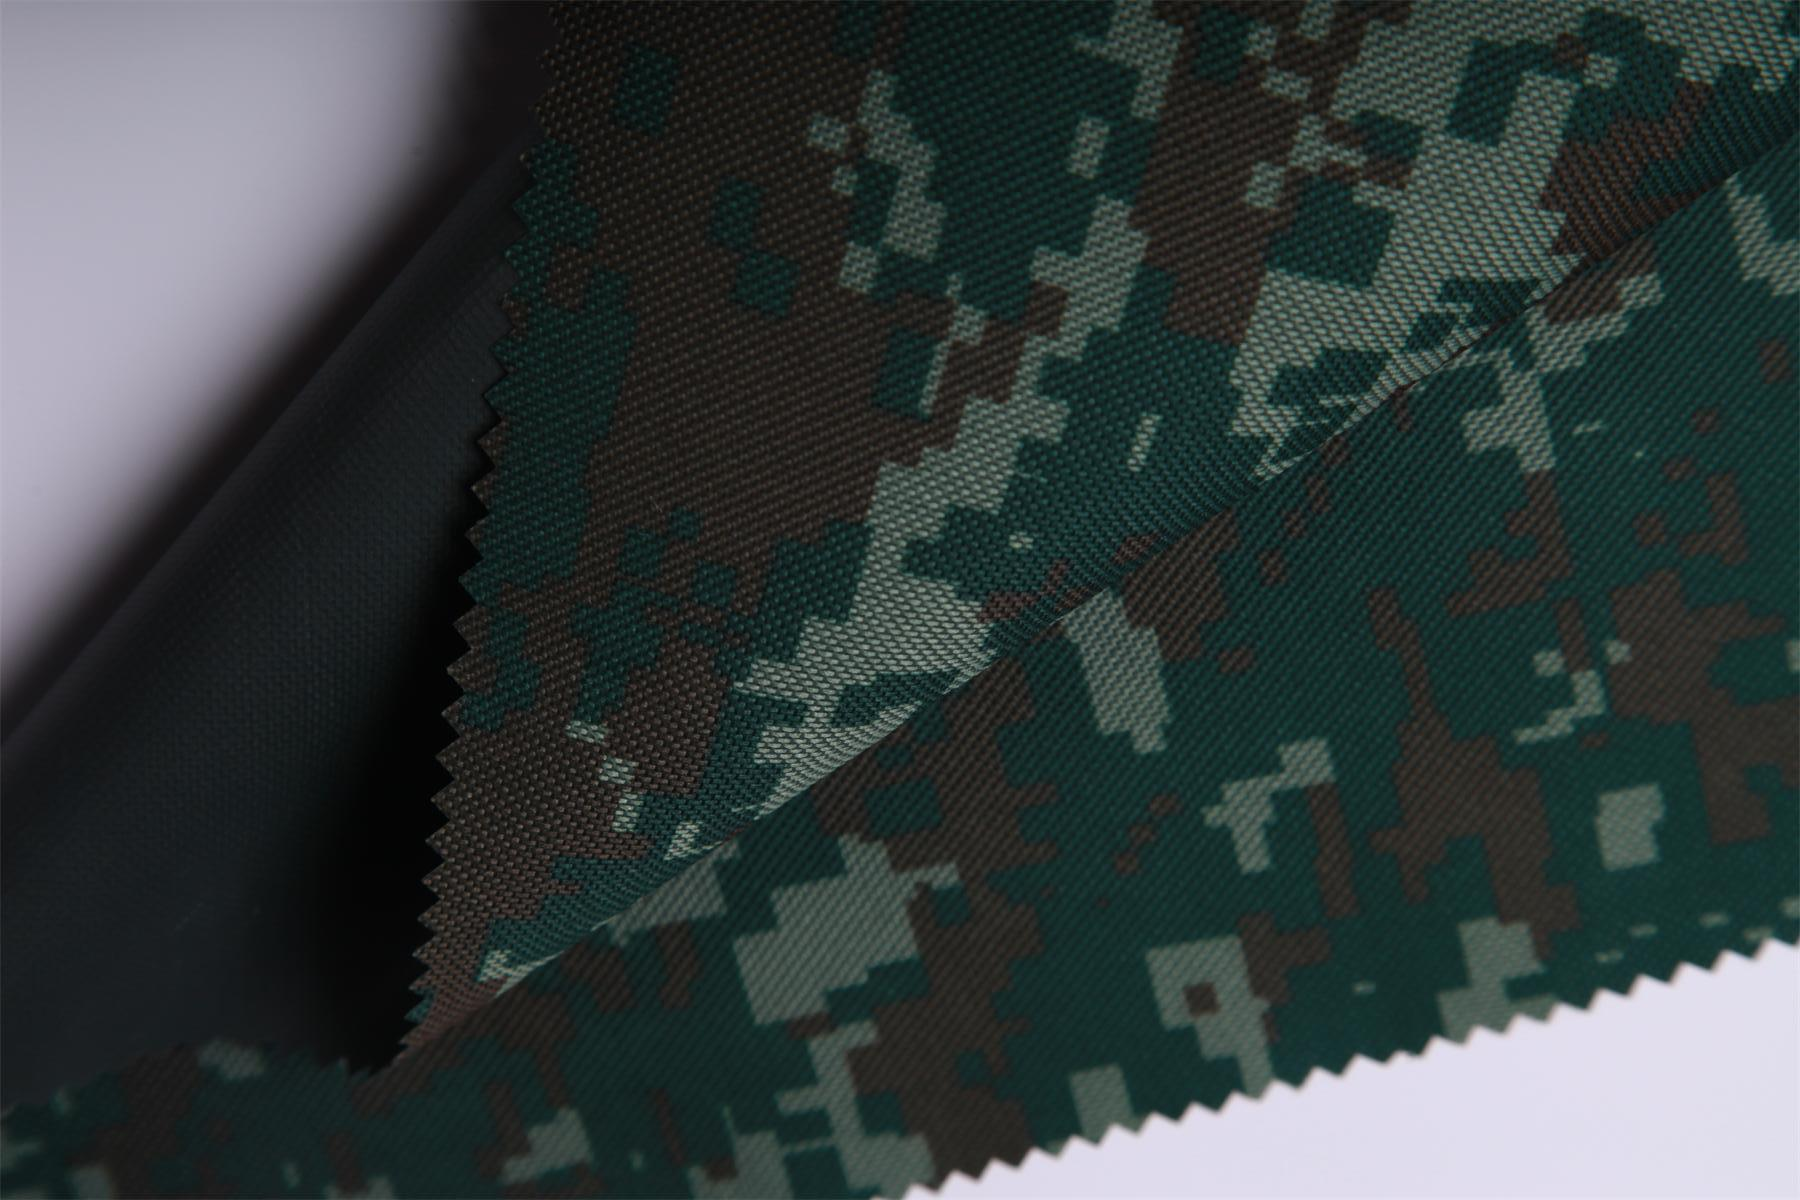 digital camouflage print heavy metal free diamond pvc coating nylon washed oxford fabric